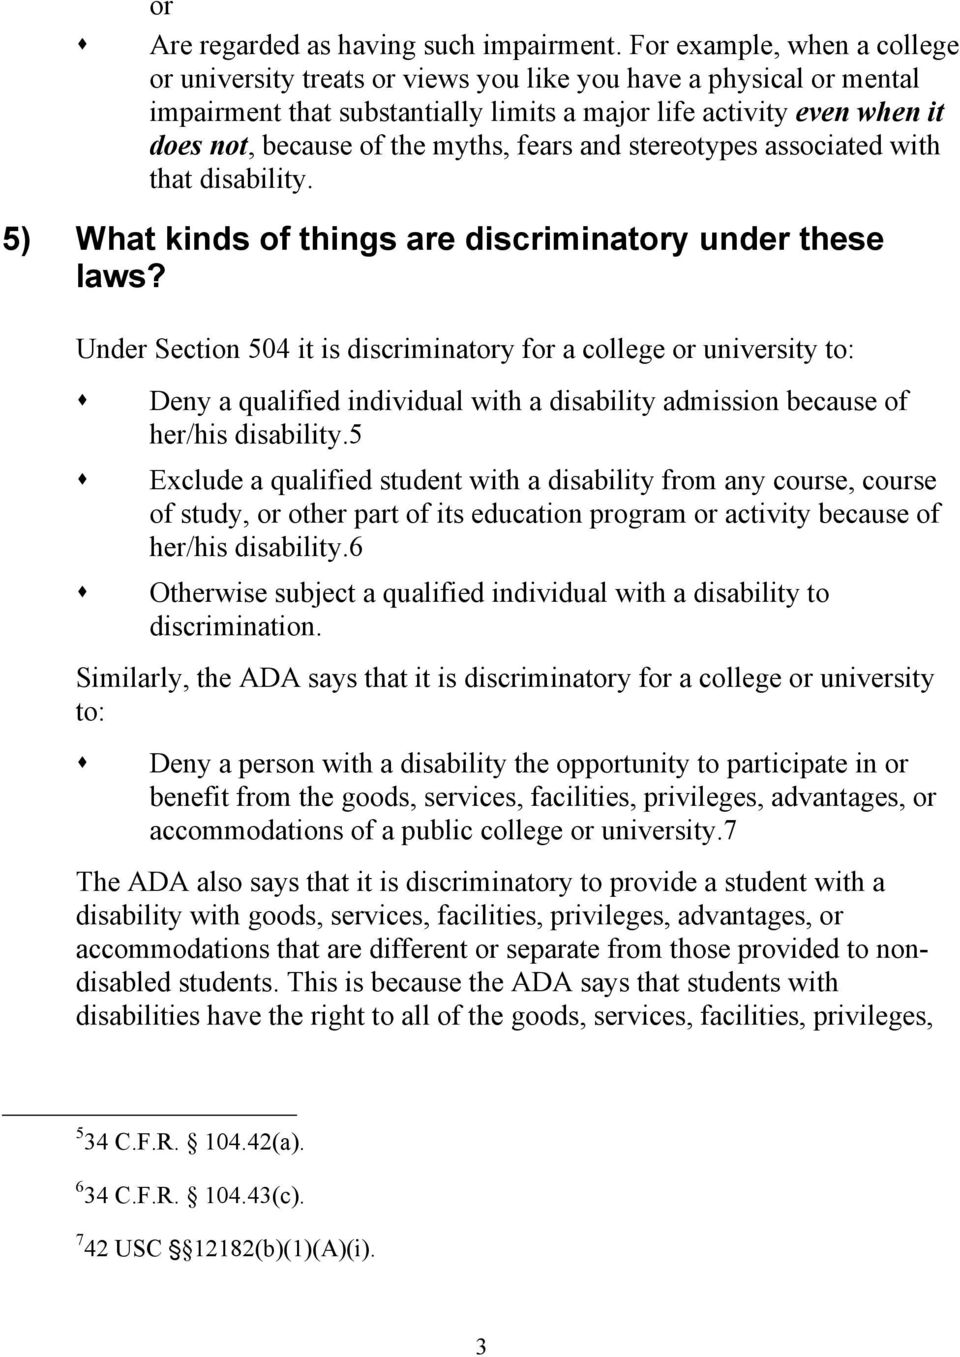 myths, fears and stereotypes associated with that disability. 5) What kinds of things are discriminatory under these laws?